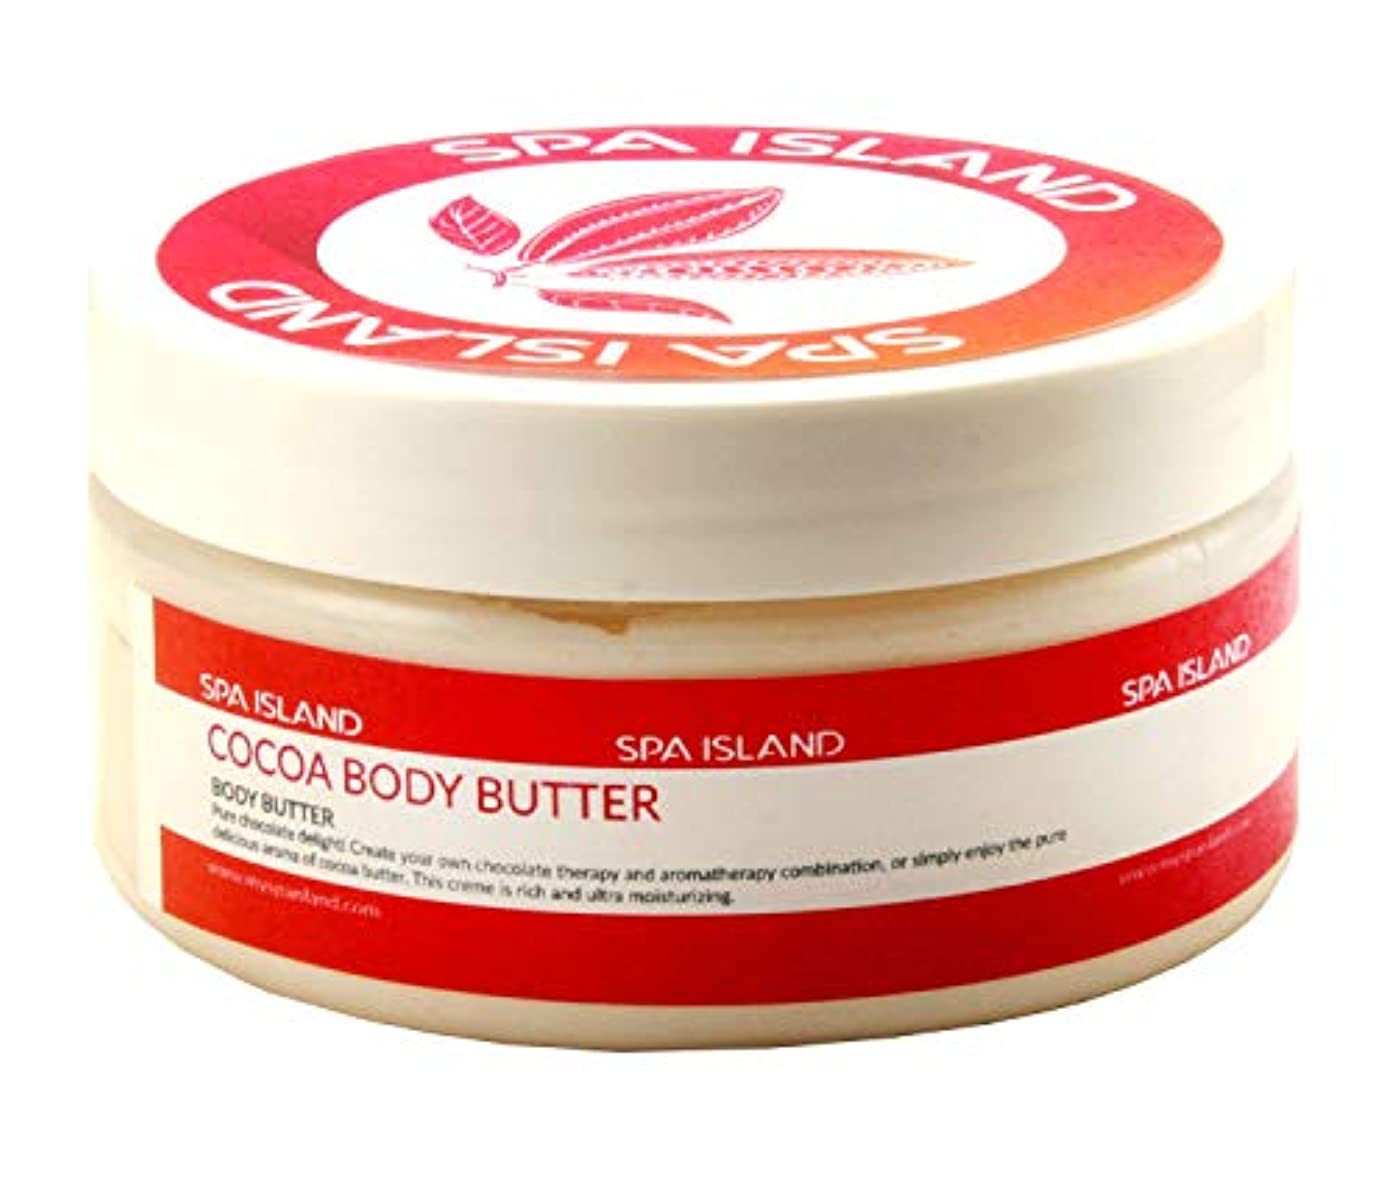 生きている歌苦情文句Spa Island 5.7oz Body Butter Cream Variety Pack (Cocoa, Mango Lime, Calming Lavendar) - Pack of 3